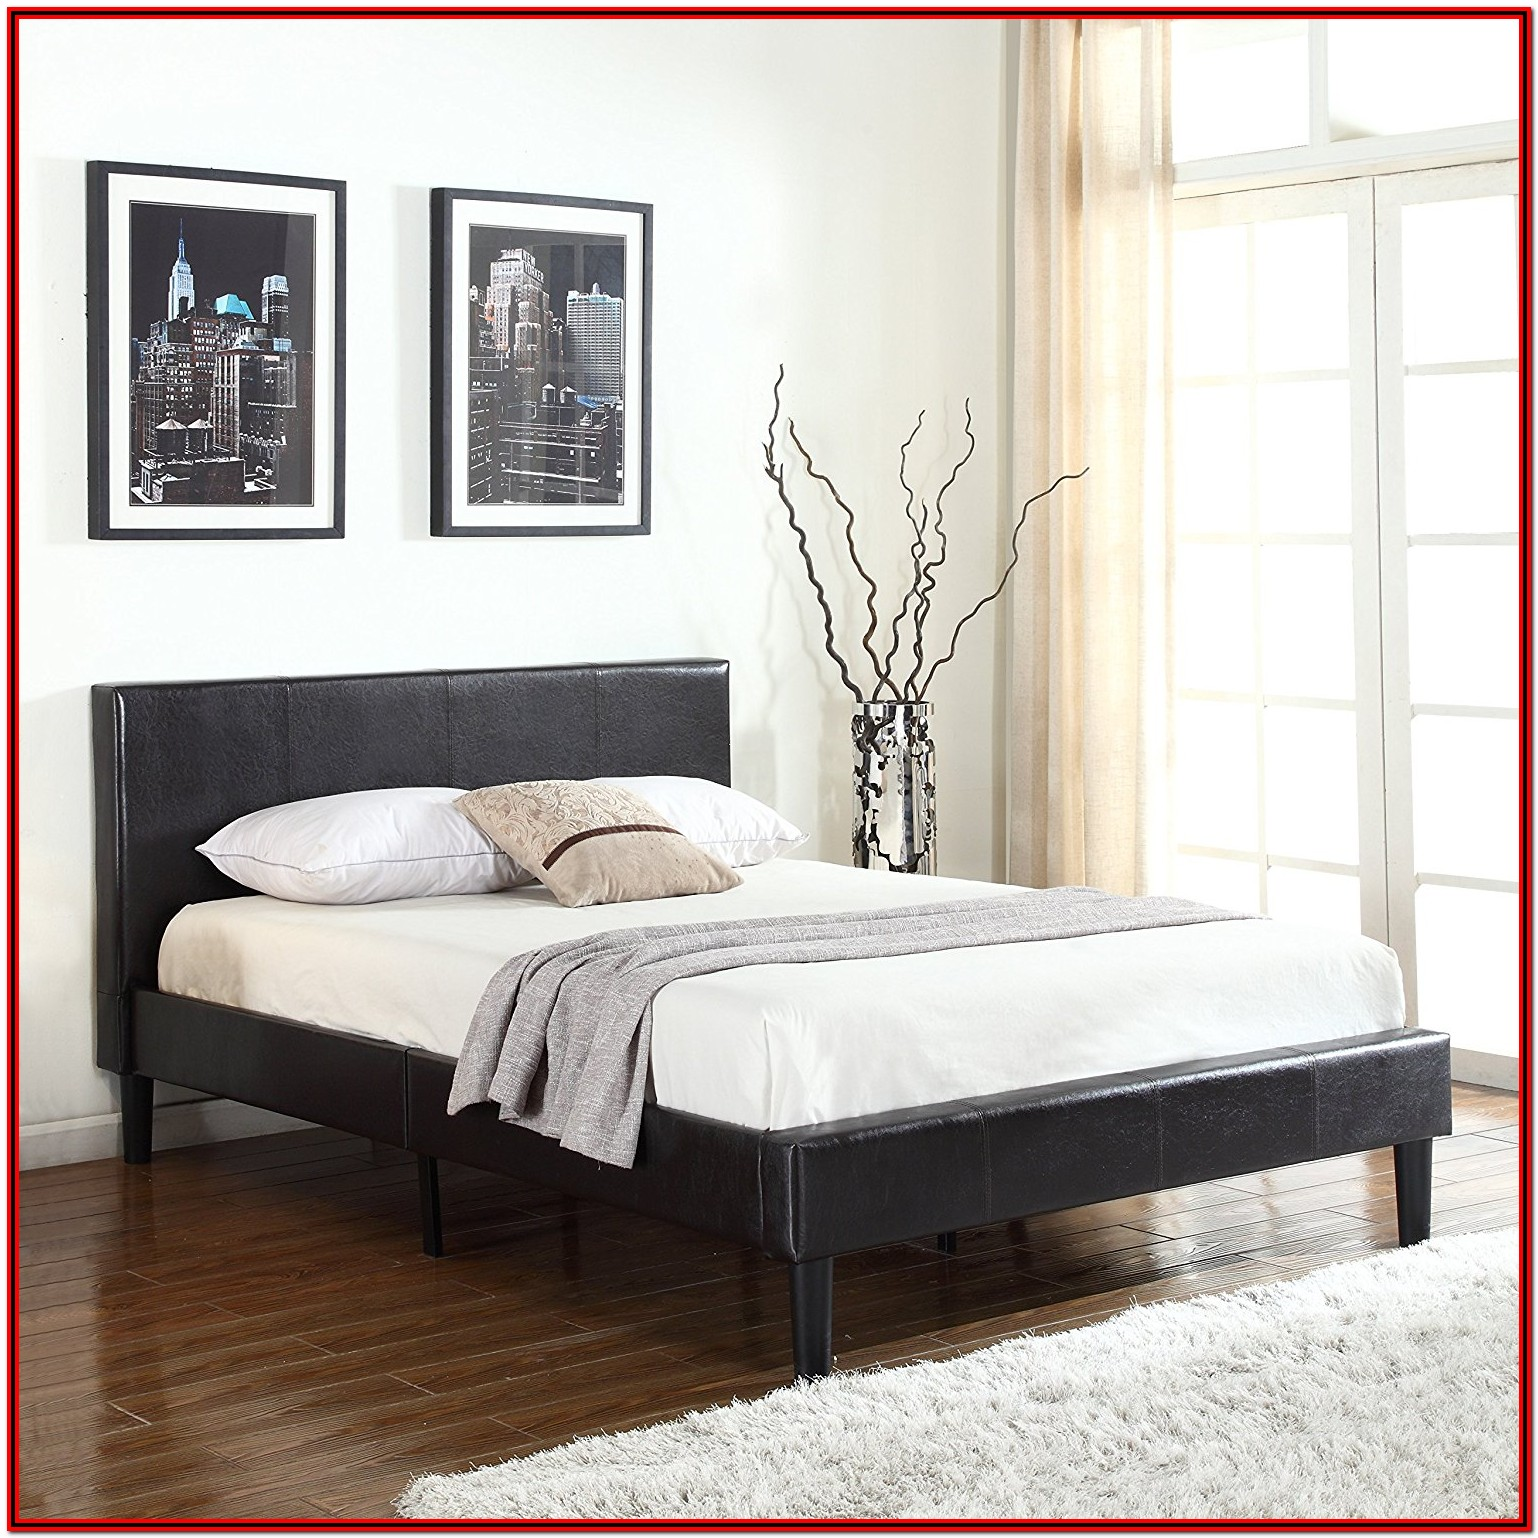 Bed Frame With Headboard Full Size